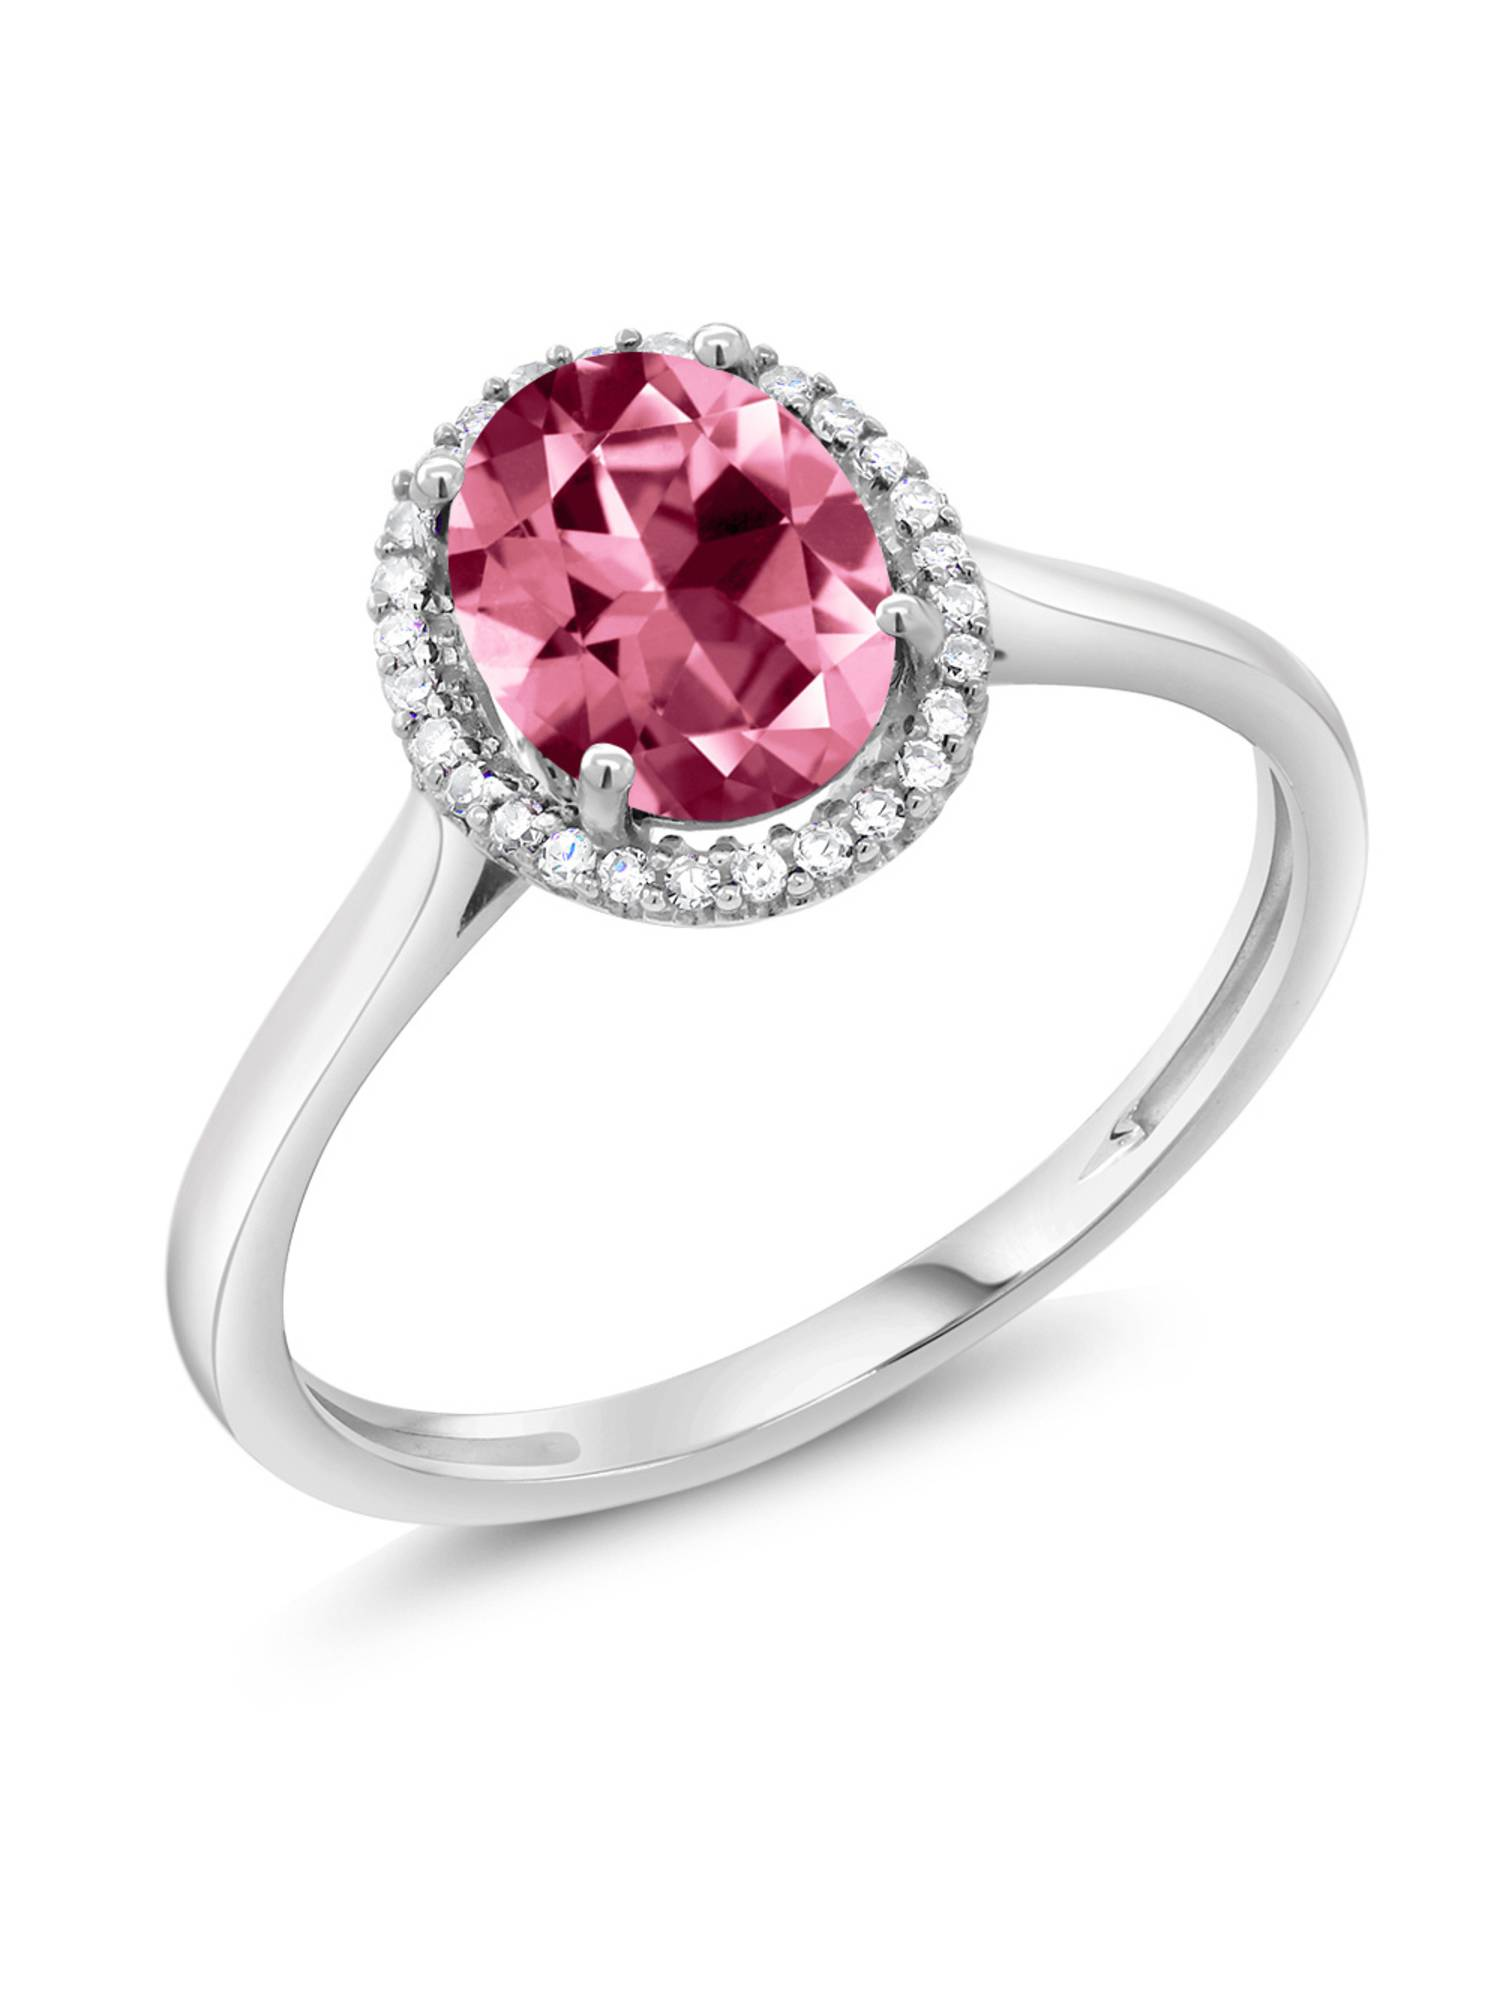 10K White Gold Diamond Ring Set with Oval Pink Topaz from Swarovski by